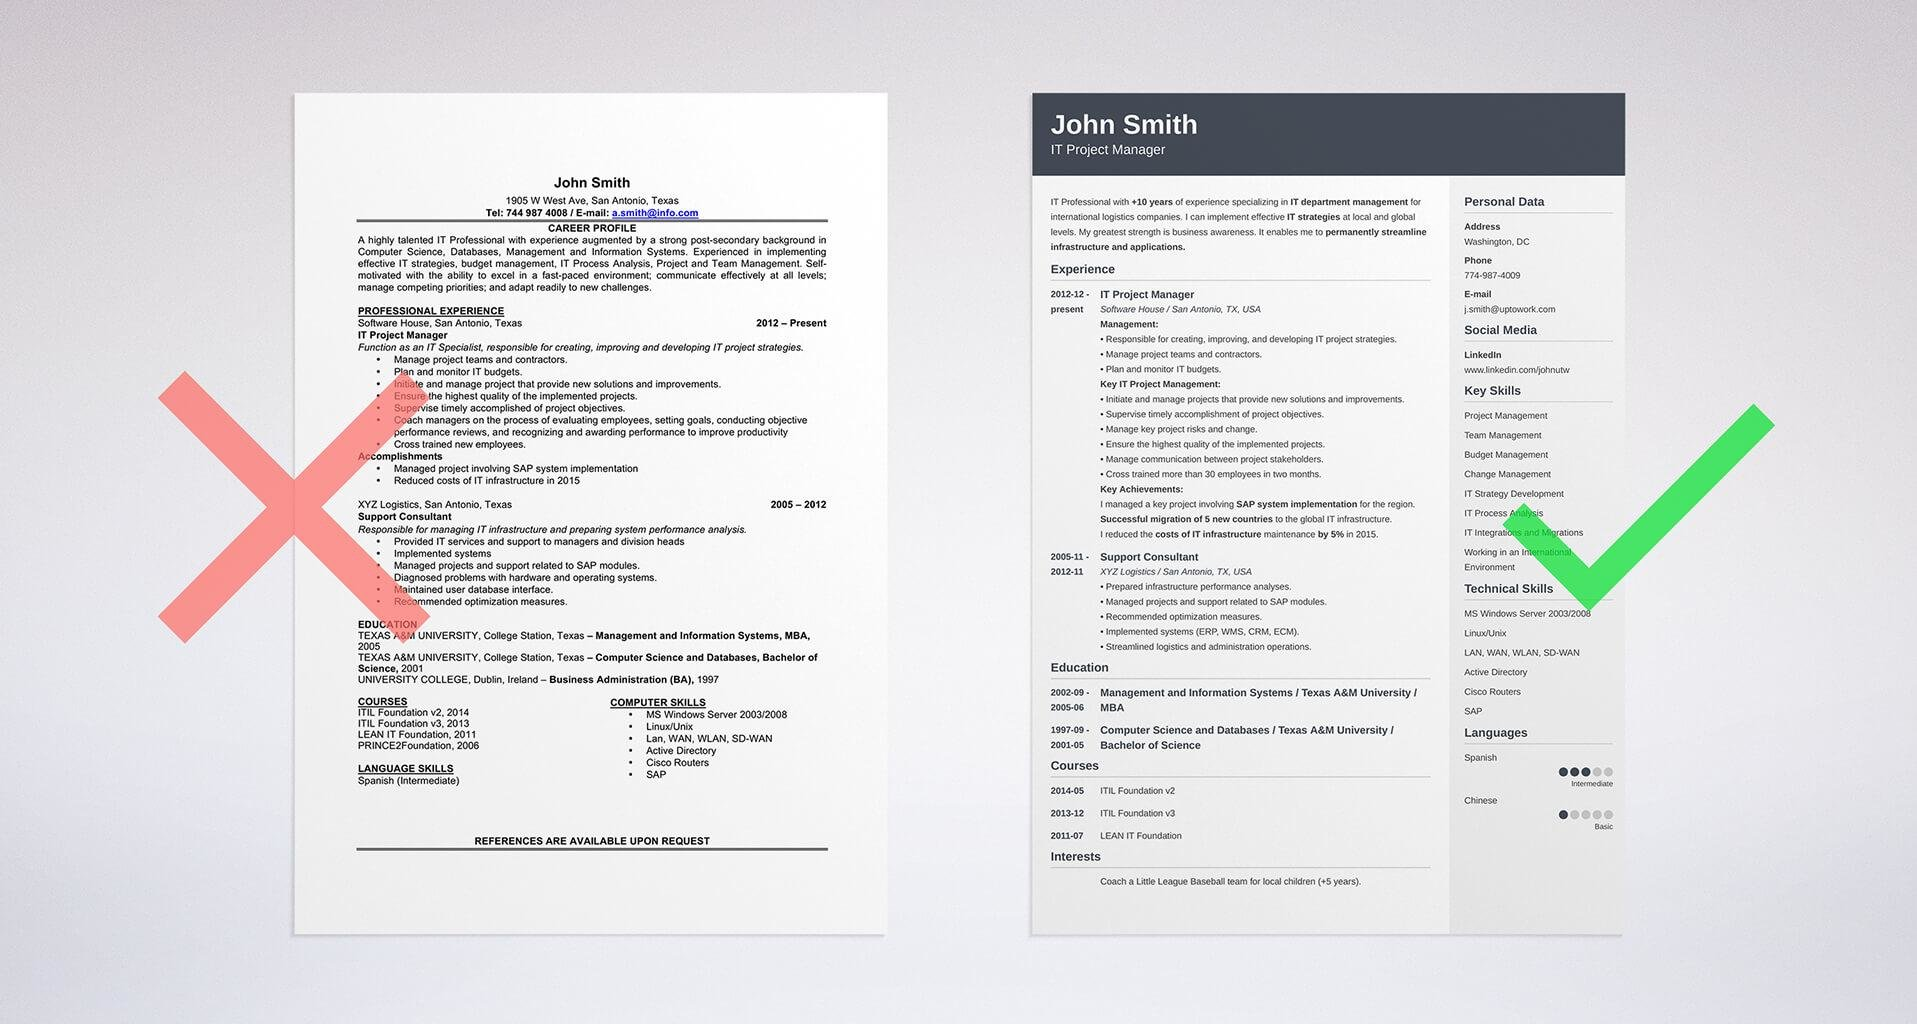 best resume format professional samples different formats types example of mina chang Resume Different Resume Formats Types